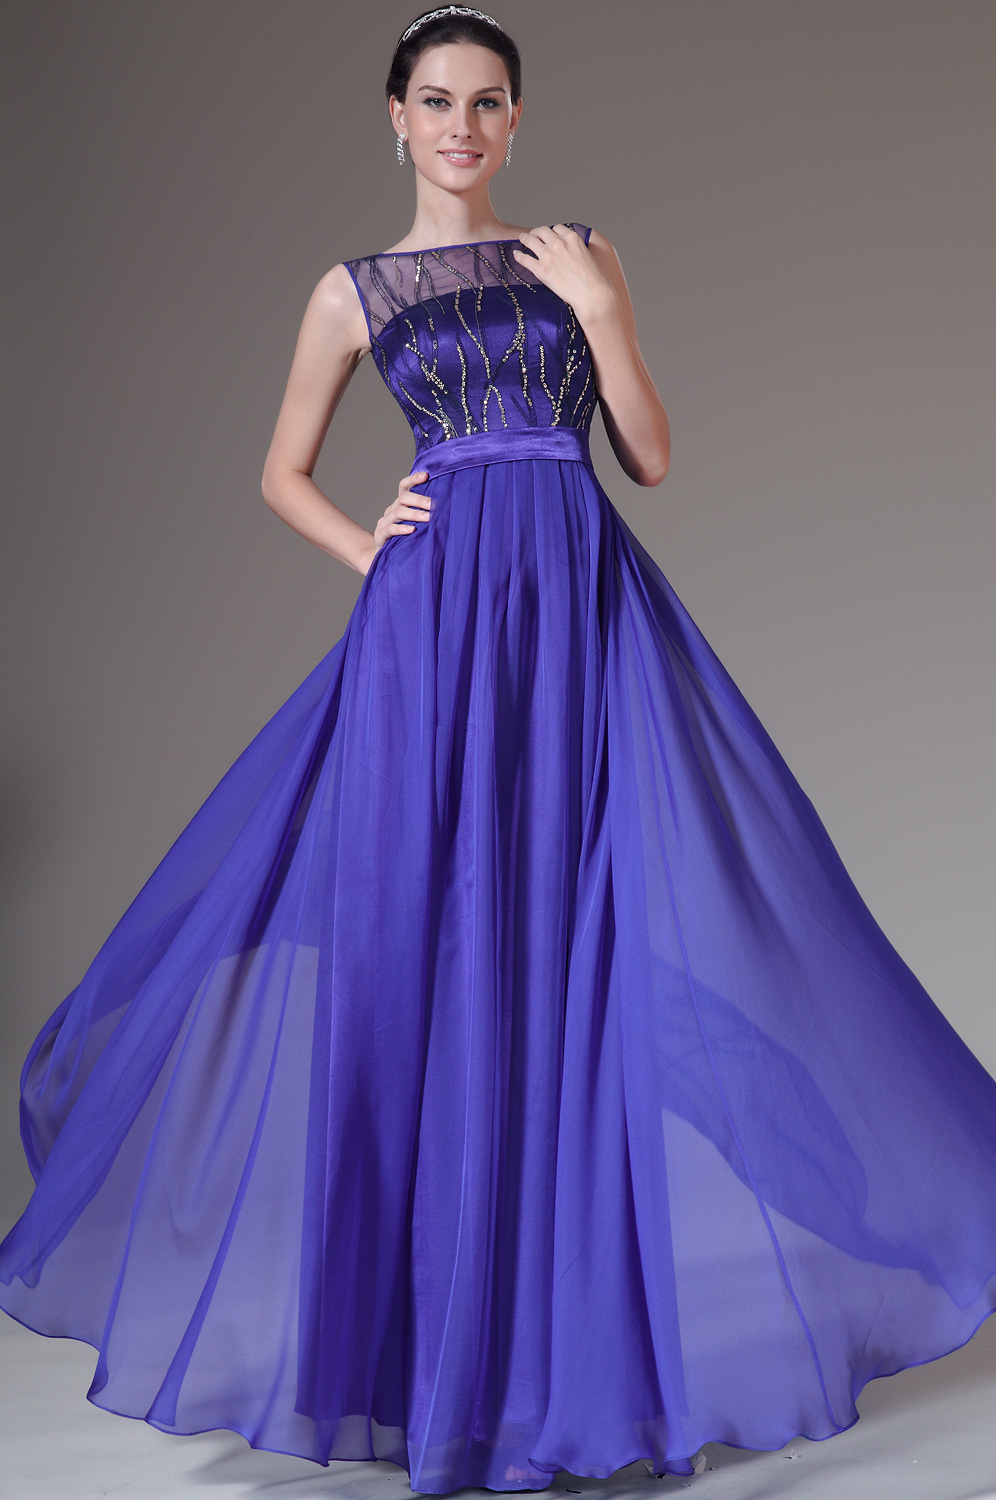 3.25 Sale Royal Blue Simple Elegant Evening Gown Gala Evening ...